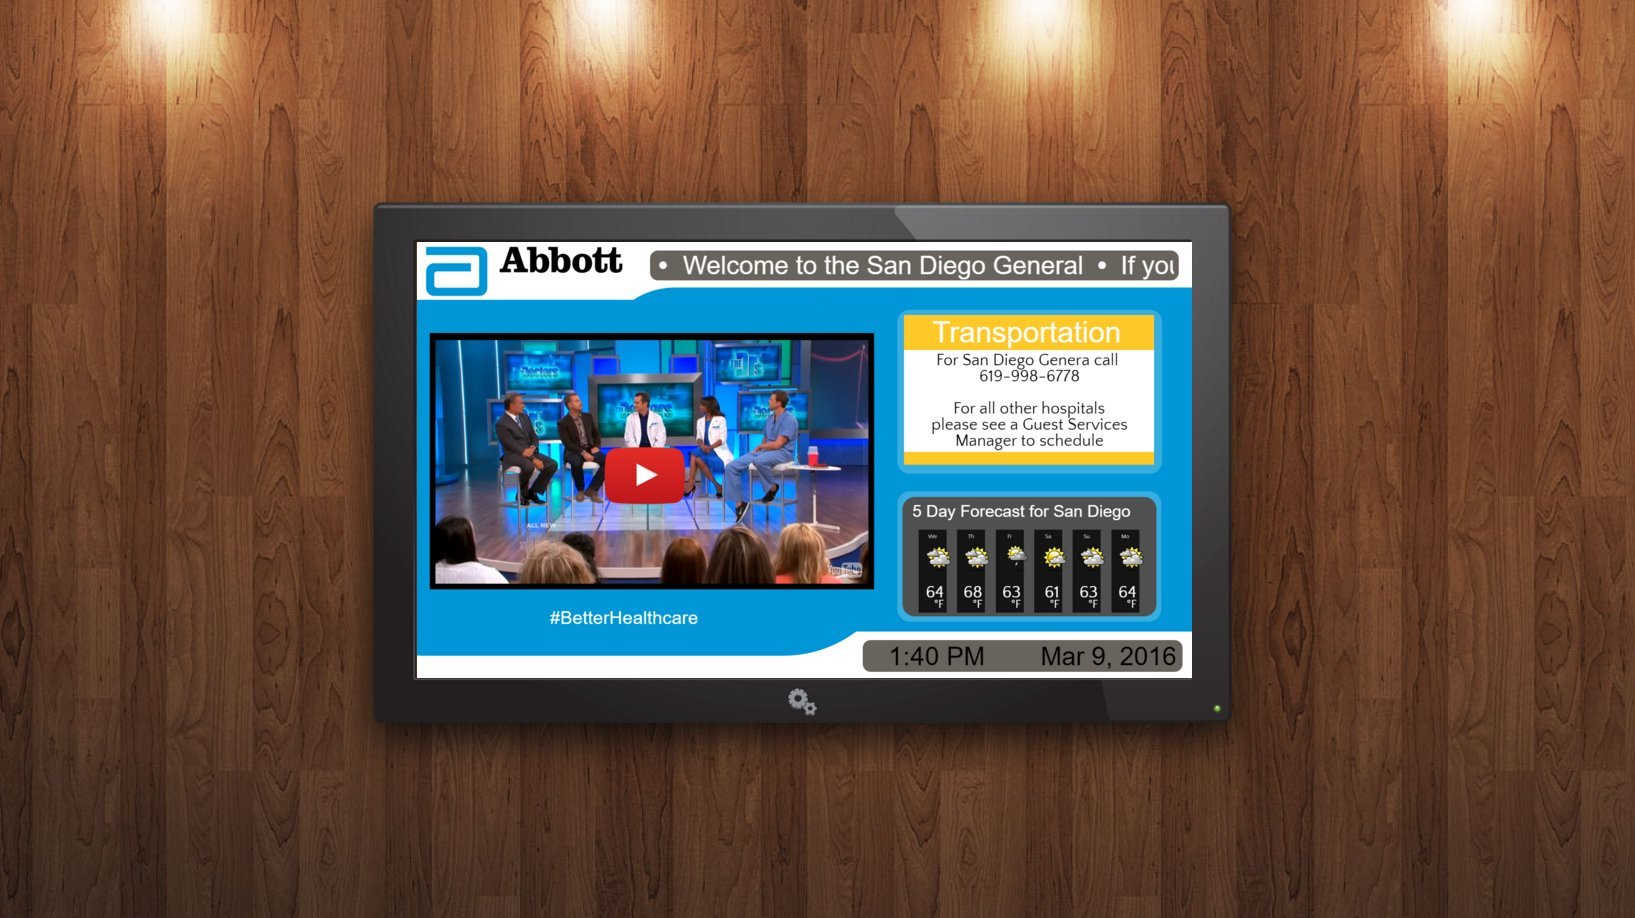 SmartSign2go Digital Signage Player, Turns any TV into a Sign! Simple Cloud-based Software for Non-Technical People. Google Chromebox Player, Custom Design and Free Software Trial Included. by SmartSign2go (Image #5)